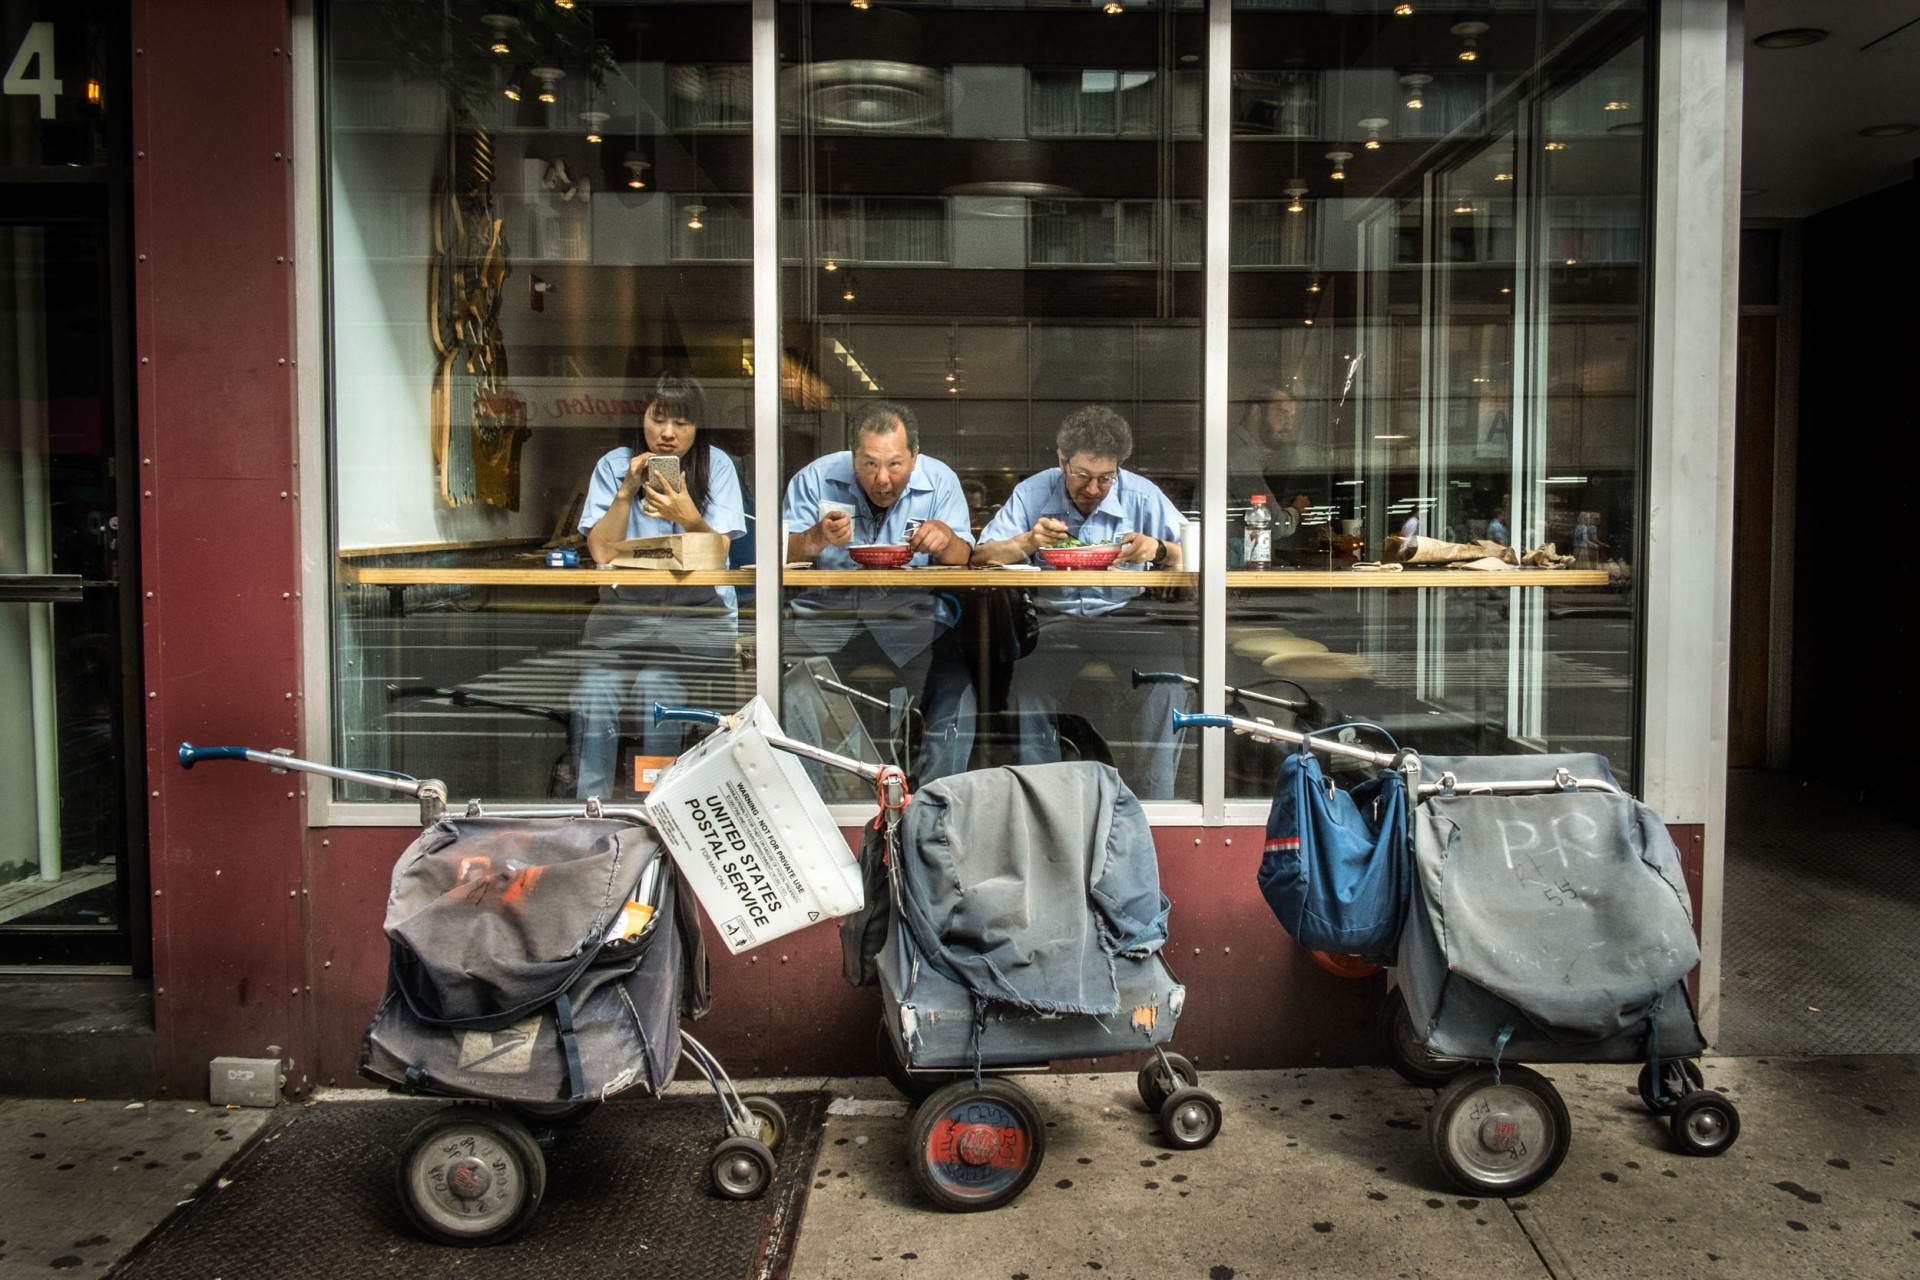 LunchBreak - New York - 2016